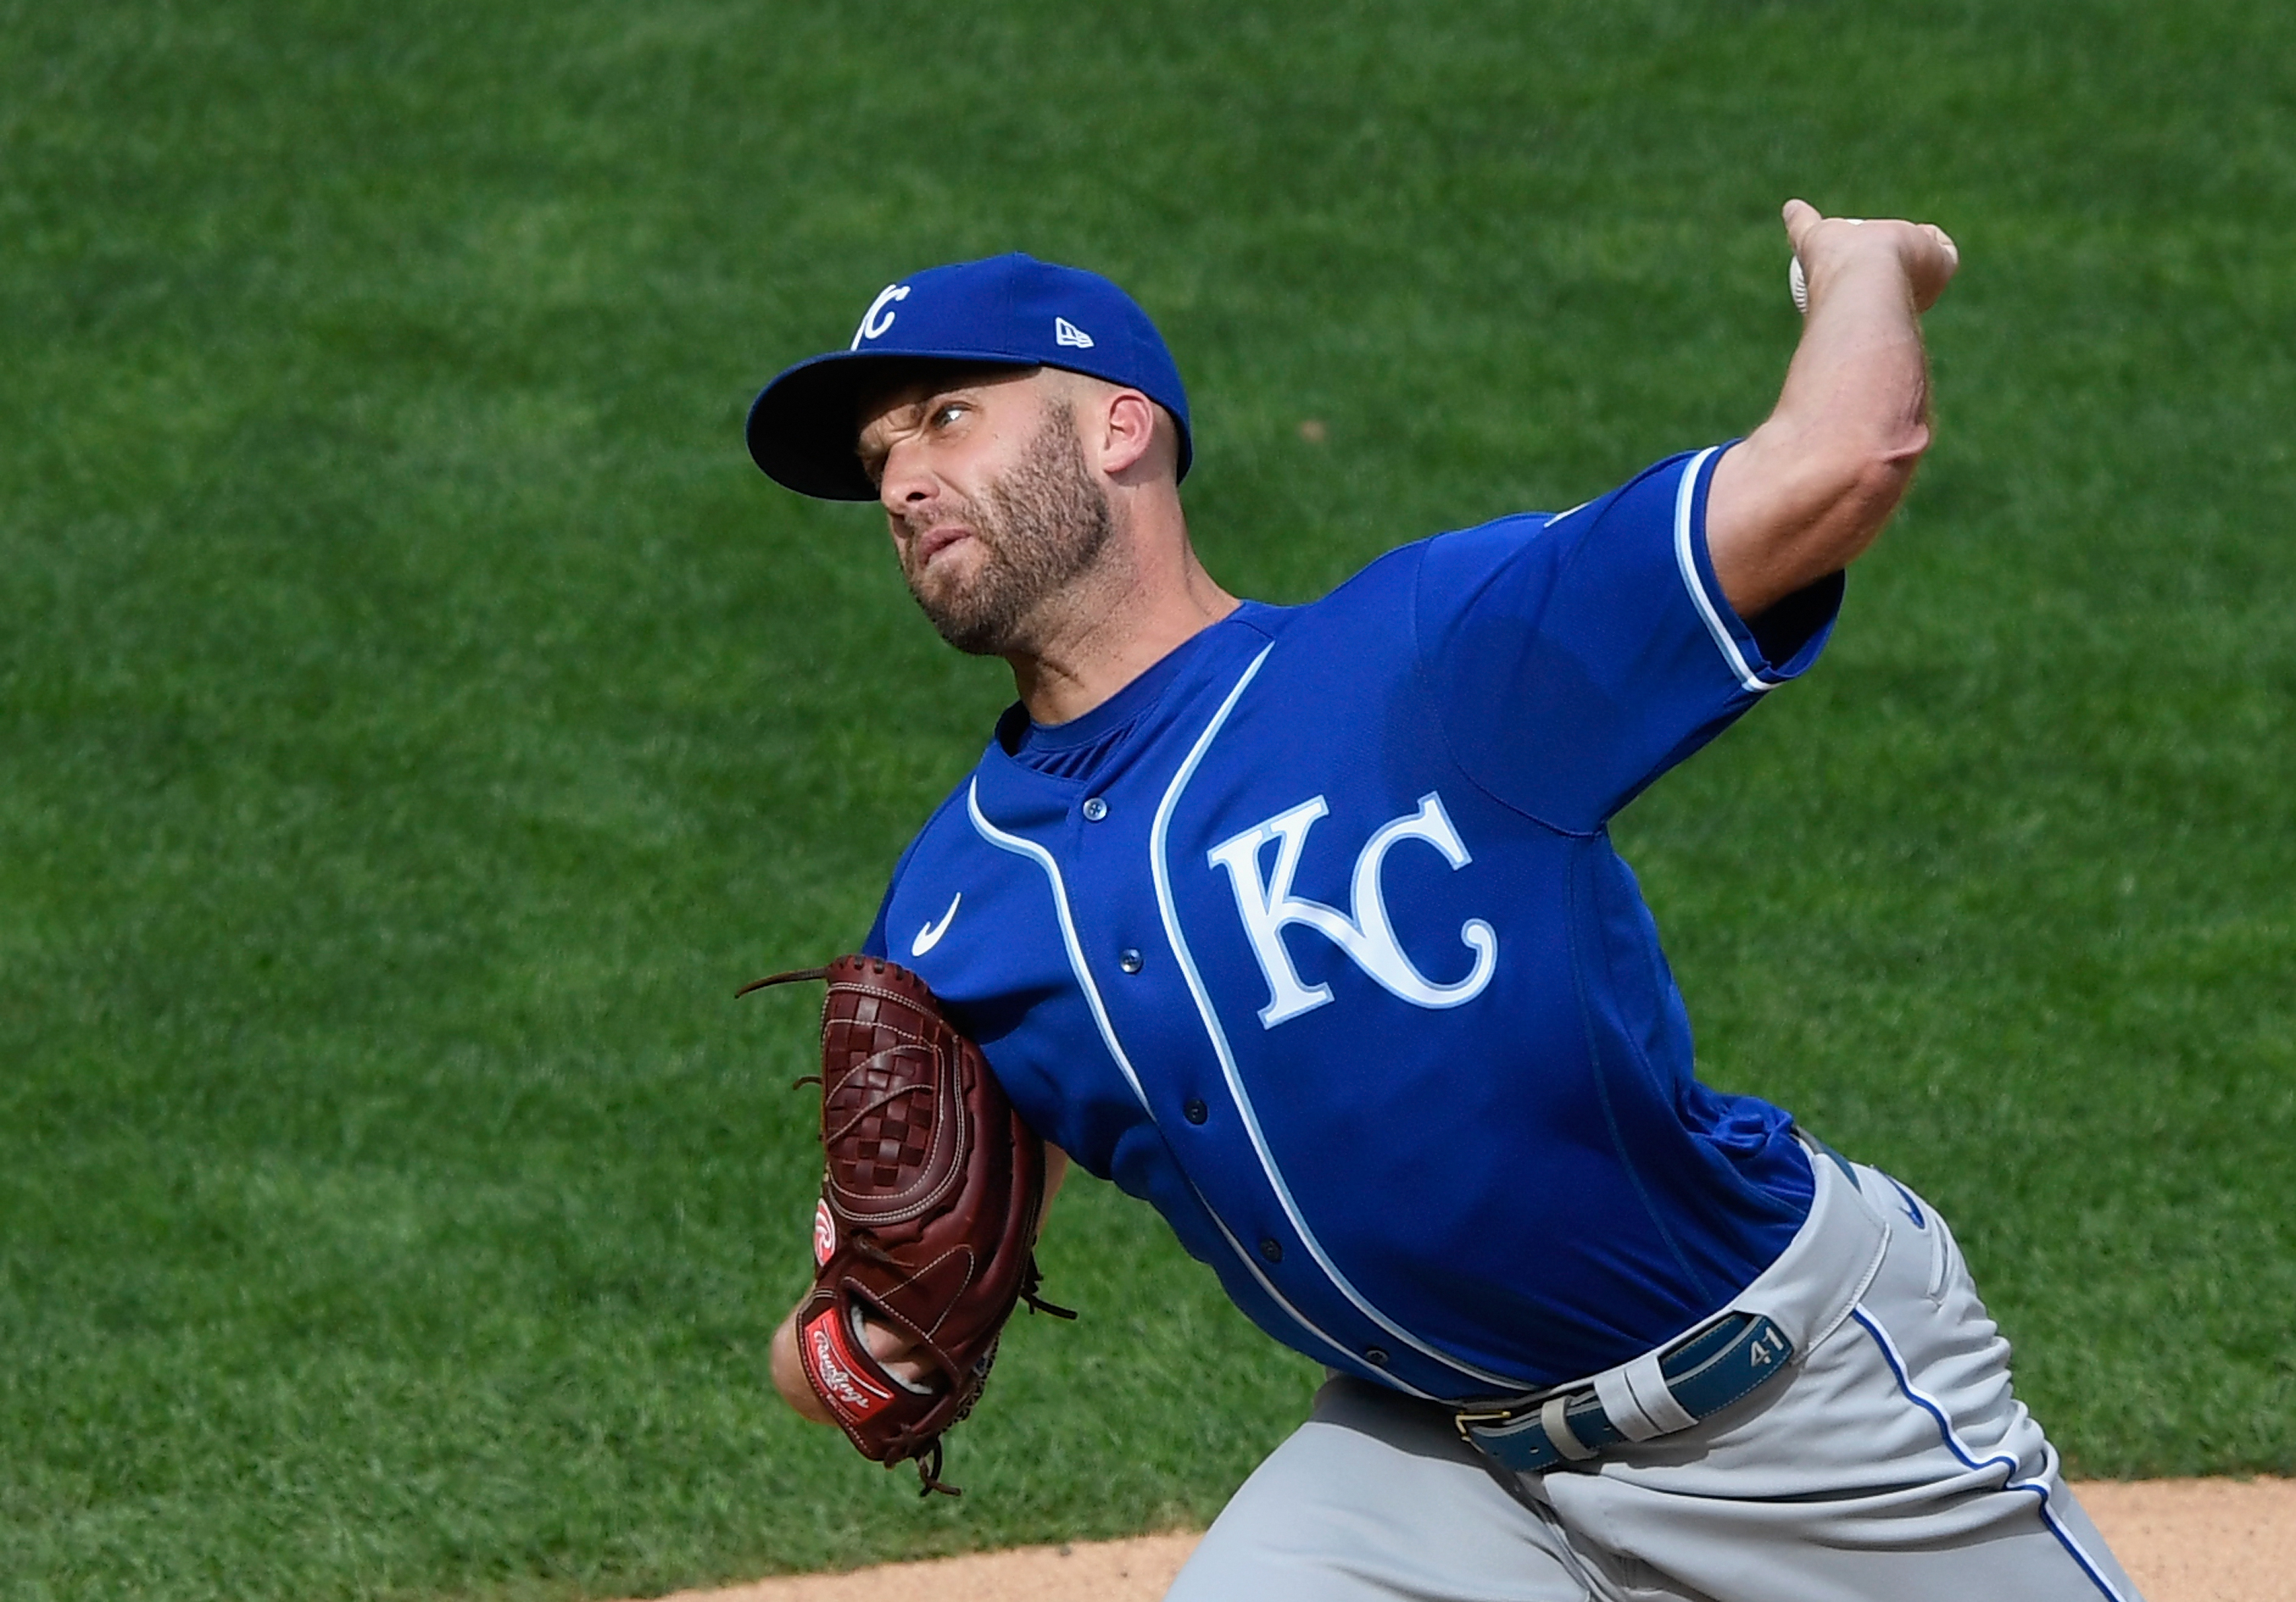 Danny Duffy throwing a pitch